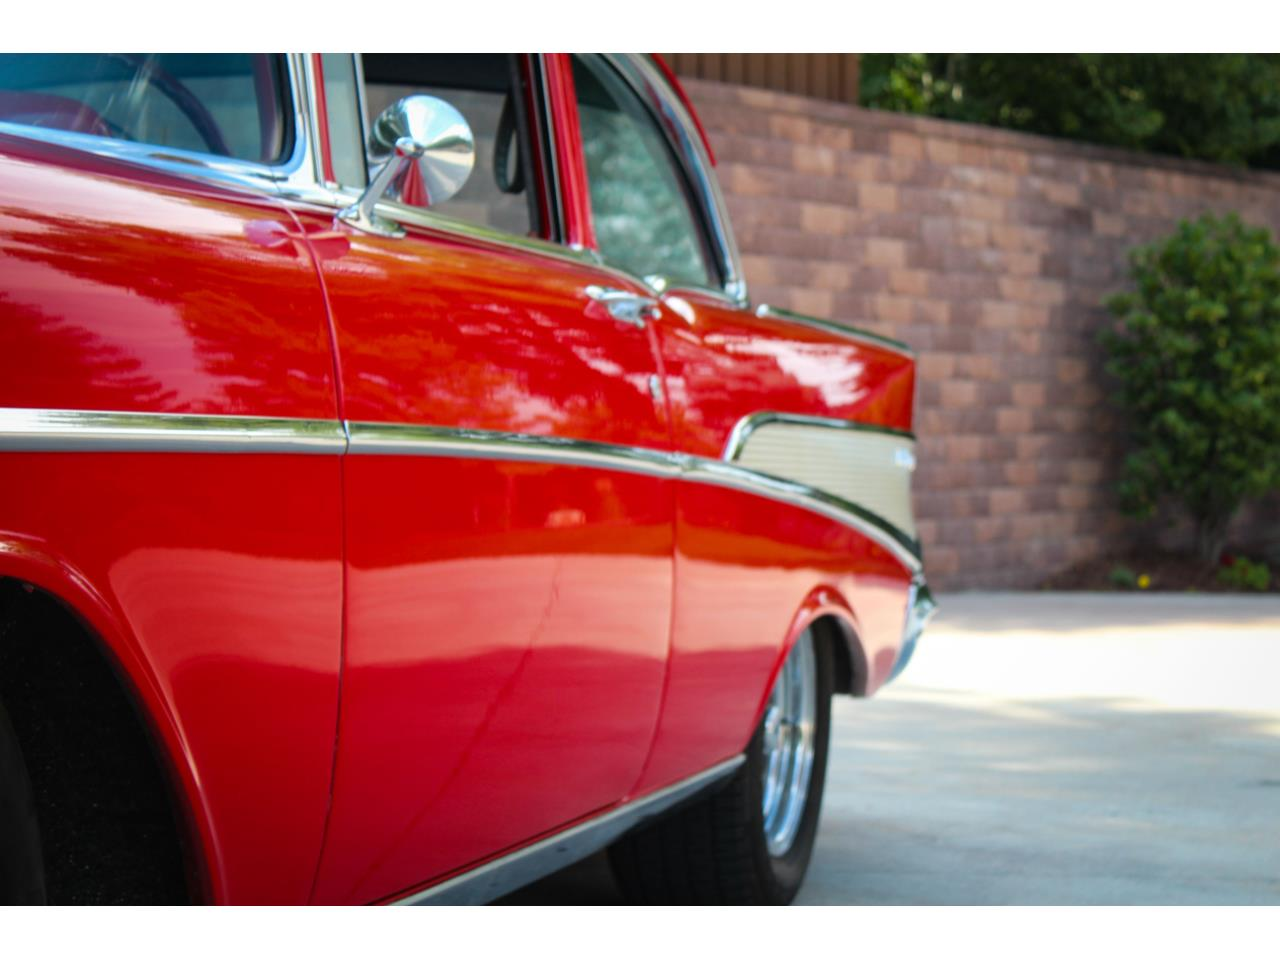 1957 Chevrolet Bel Air for sale in Greeley, CO – photo 9